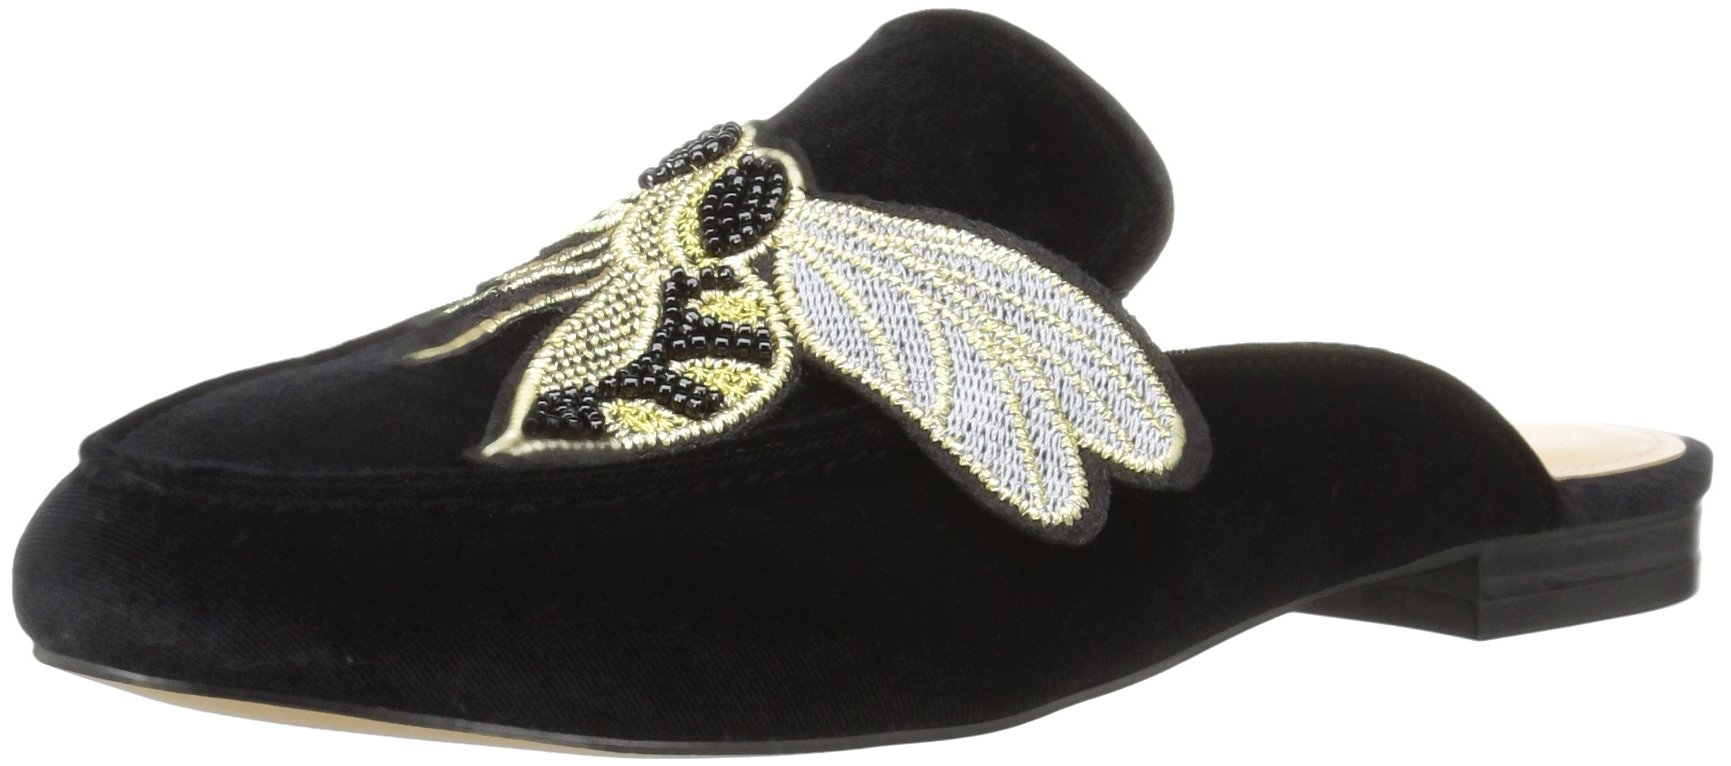 The Fix Women's Fay Embellished Slide Smoking Loafer, Black/Bumblebee Patch, 6 M Us by The Fix